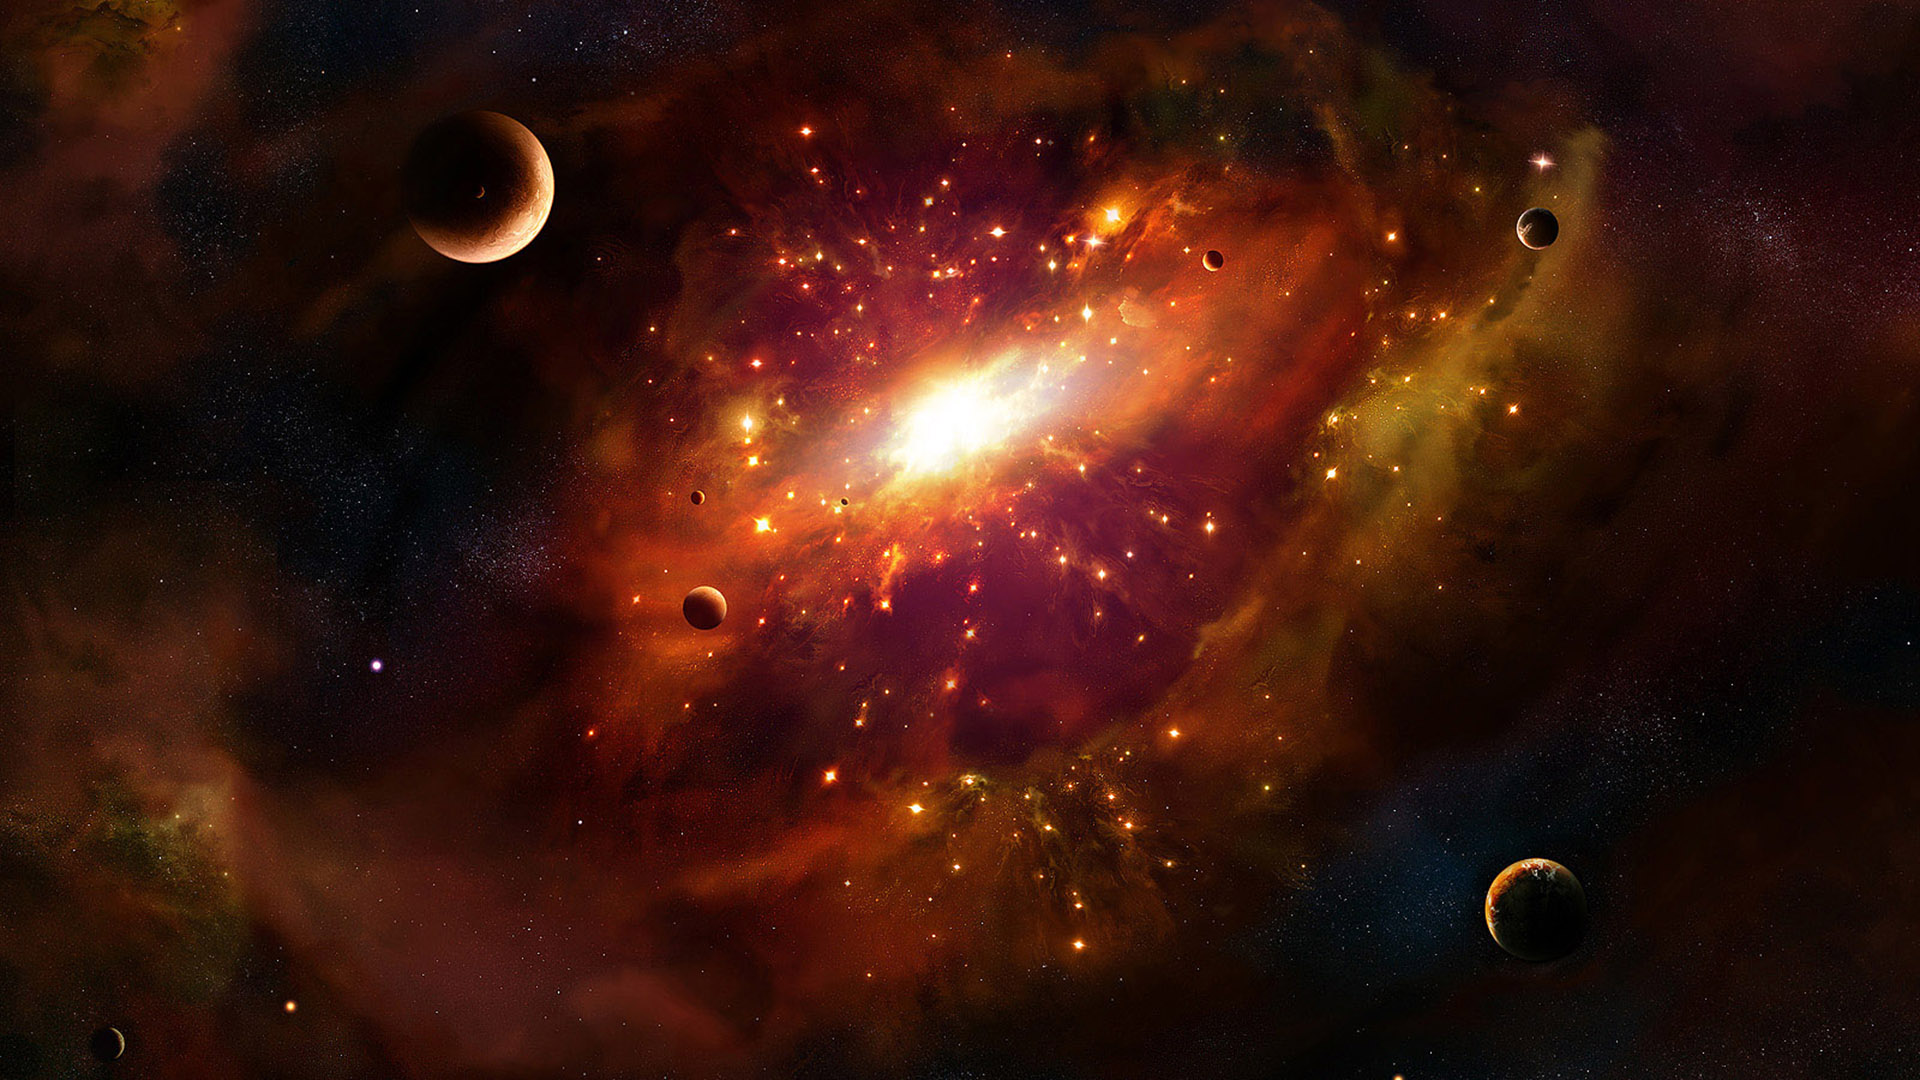 Outer Space Wallpaper 1920x1080 Outer Space Stars Planets 1920x1080